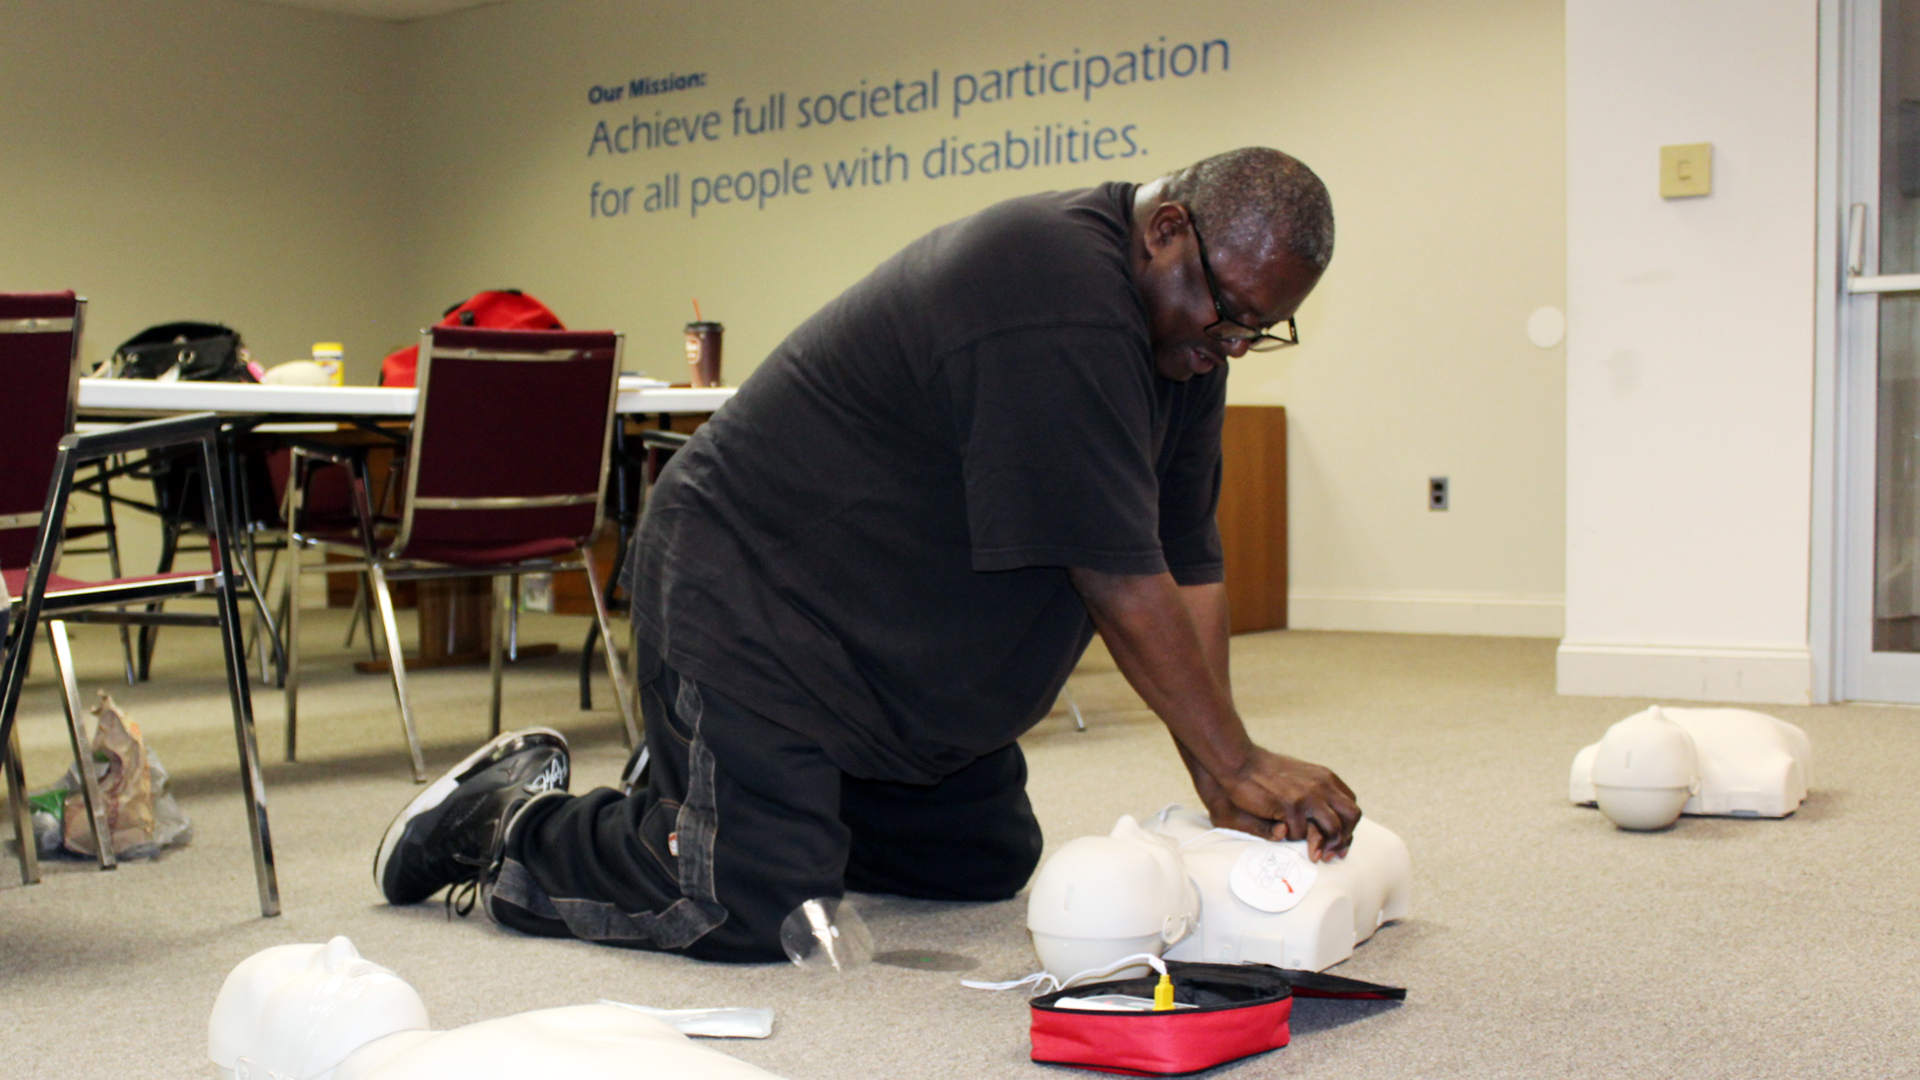 Man performing CPR on a dummy